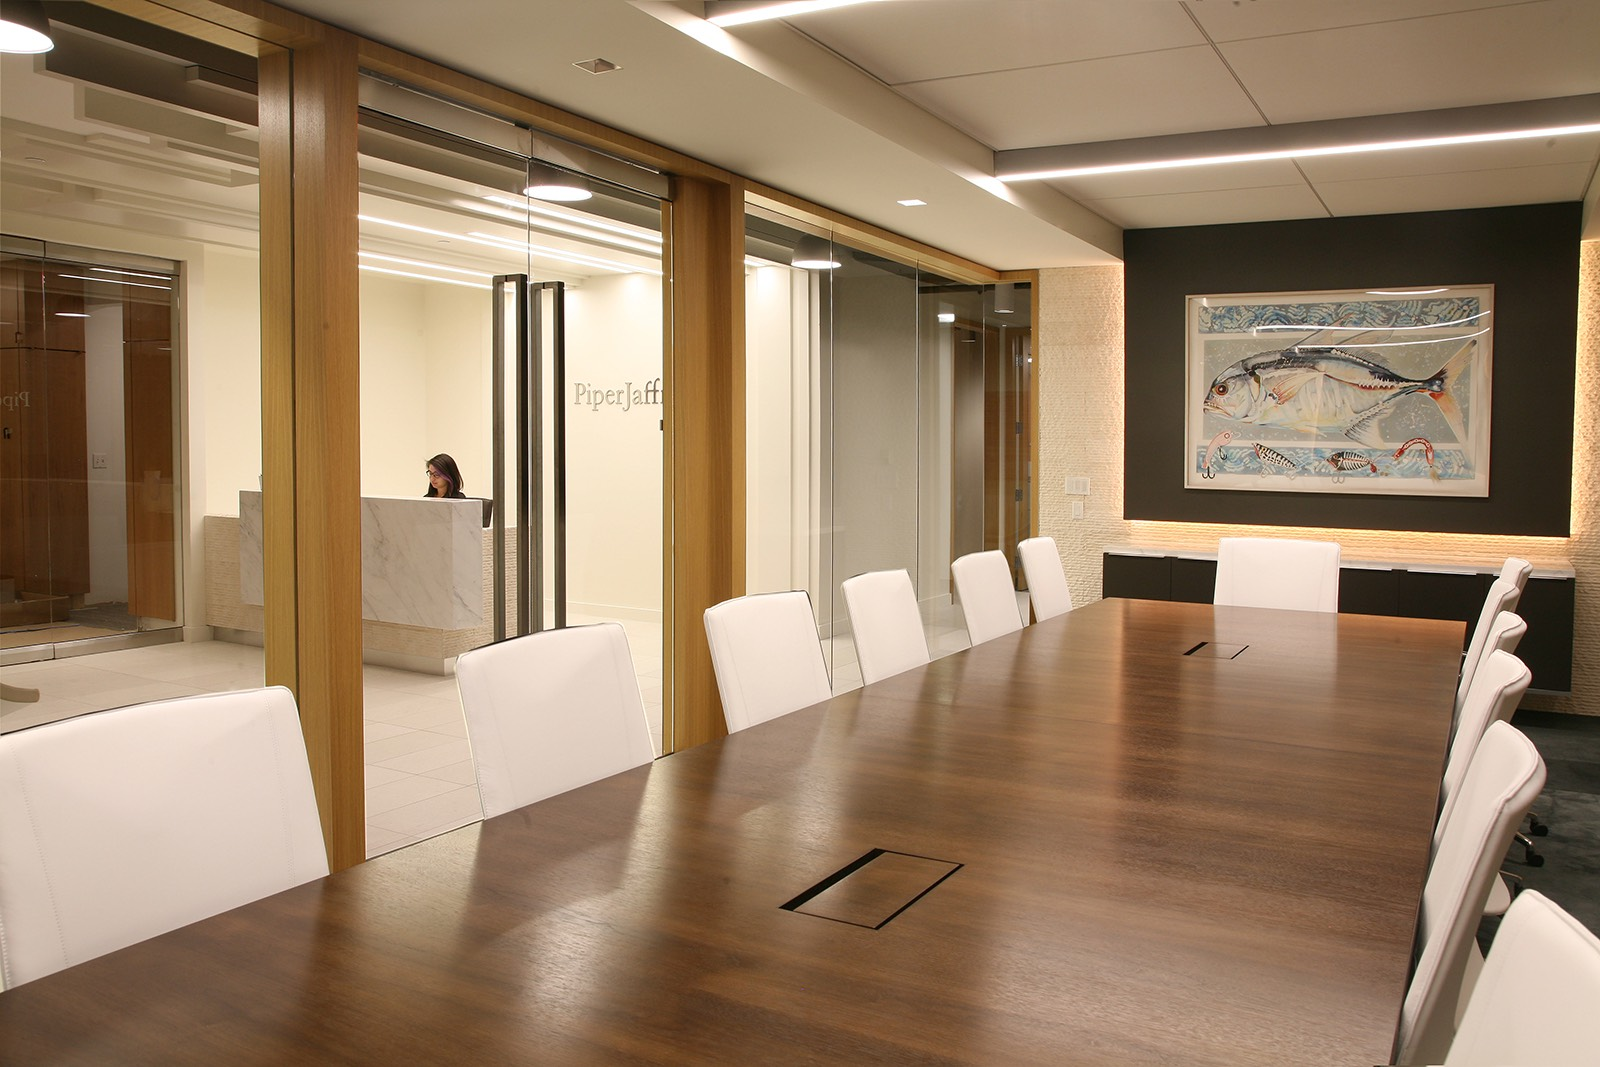 Piper-Jaffray-office-8